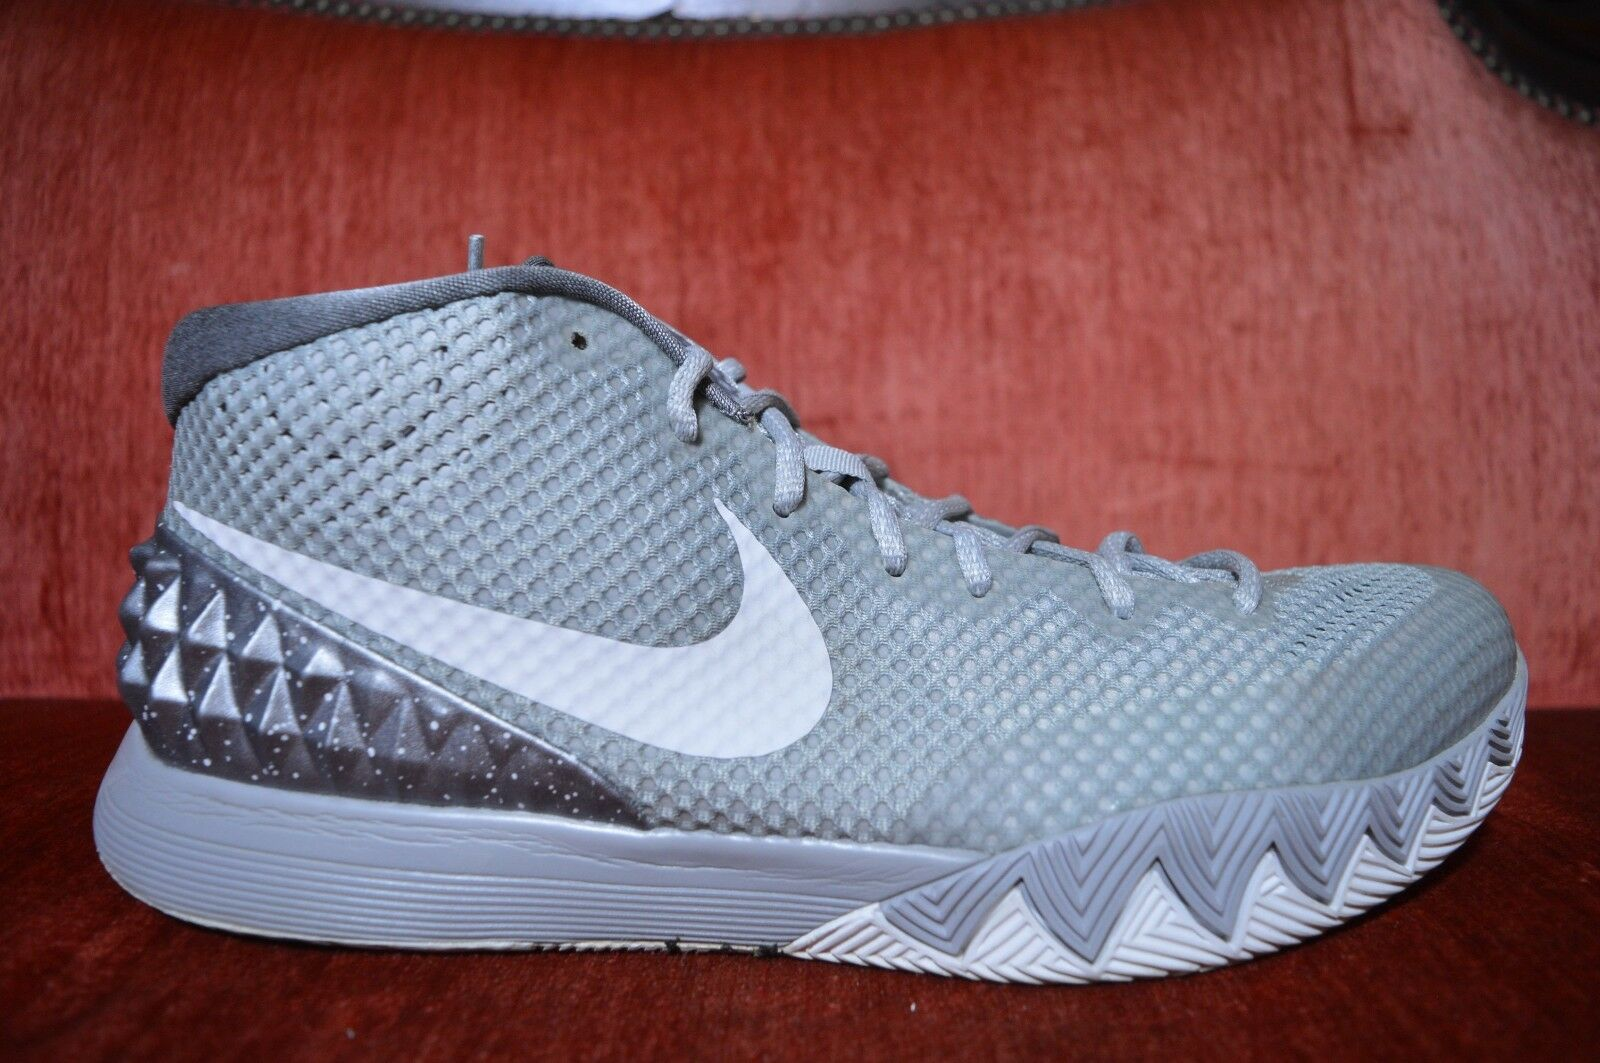 CLEAN Nike Air Kyrie 1 Wolf Grey Pewter Gray White Size 11.5 705277-010 Gray Pewter d9ce6f